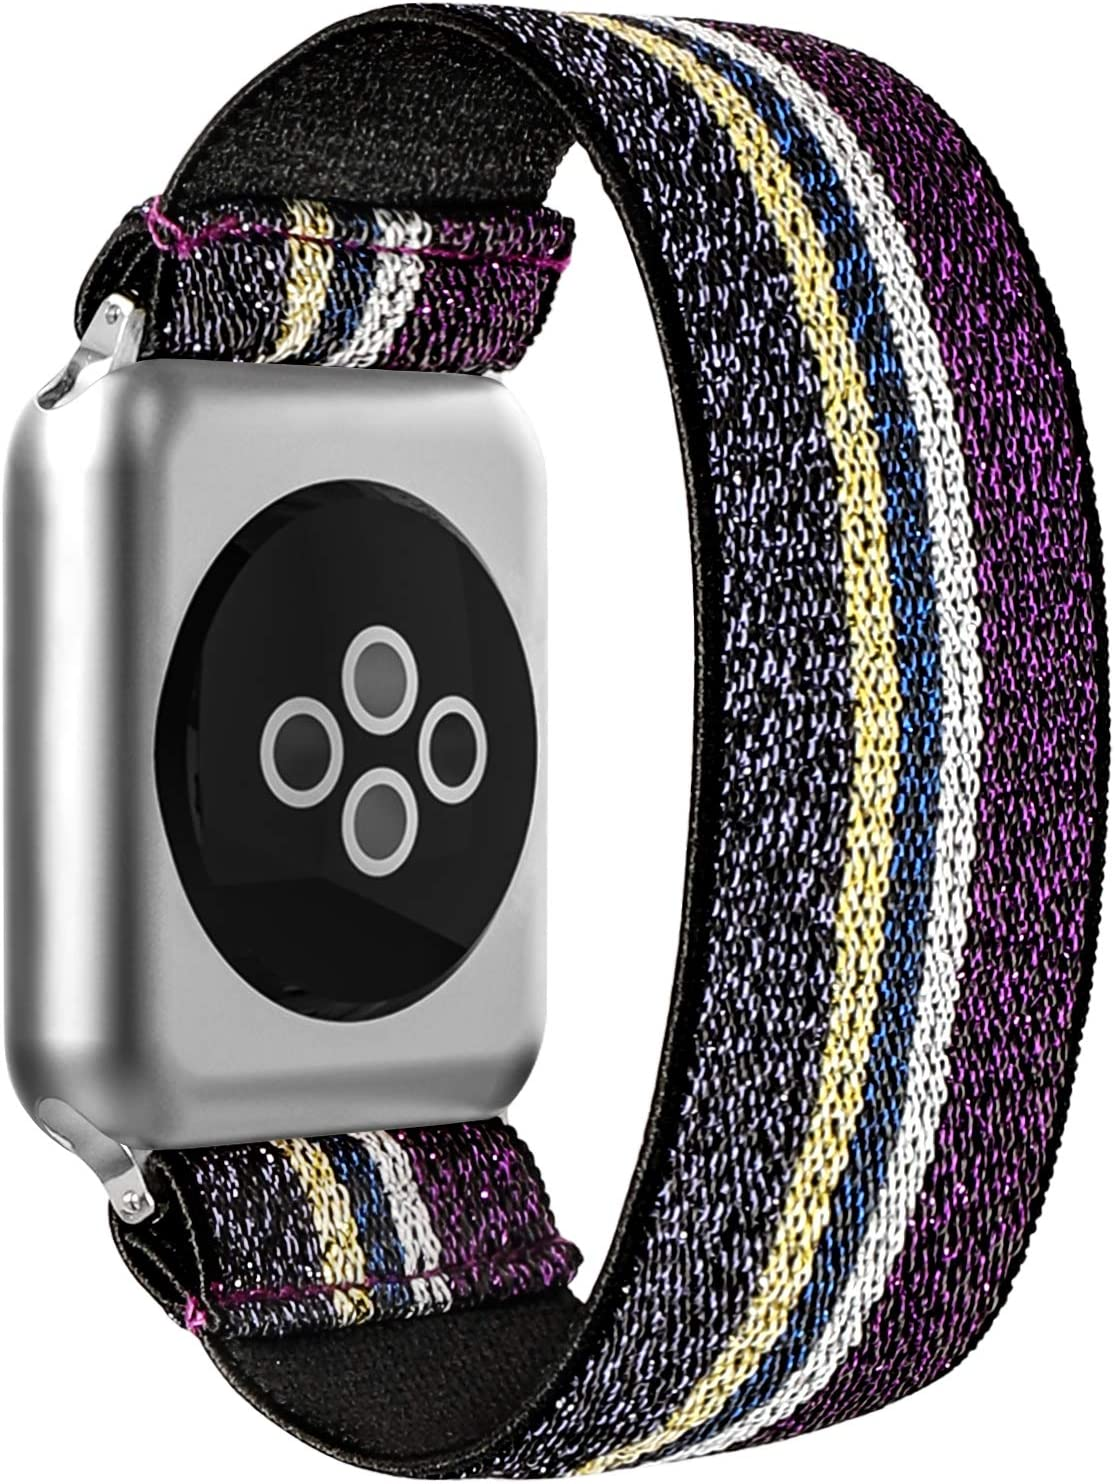 BMBEAR Stretchy Strap Loop Compatible with Apple Watch Band 38mm 40mm iWatch Series 6/5/4/3/2/1 Striped Purple